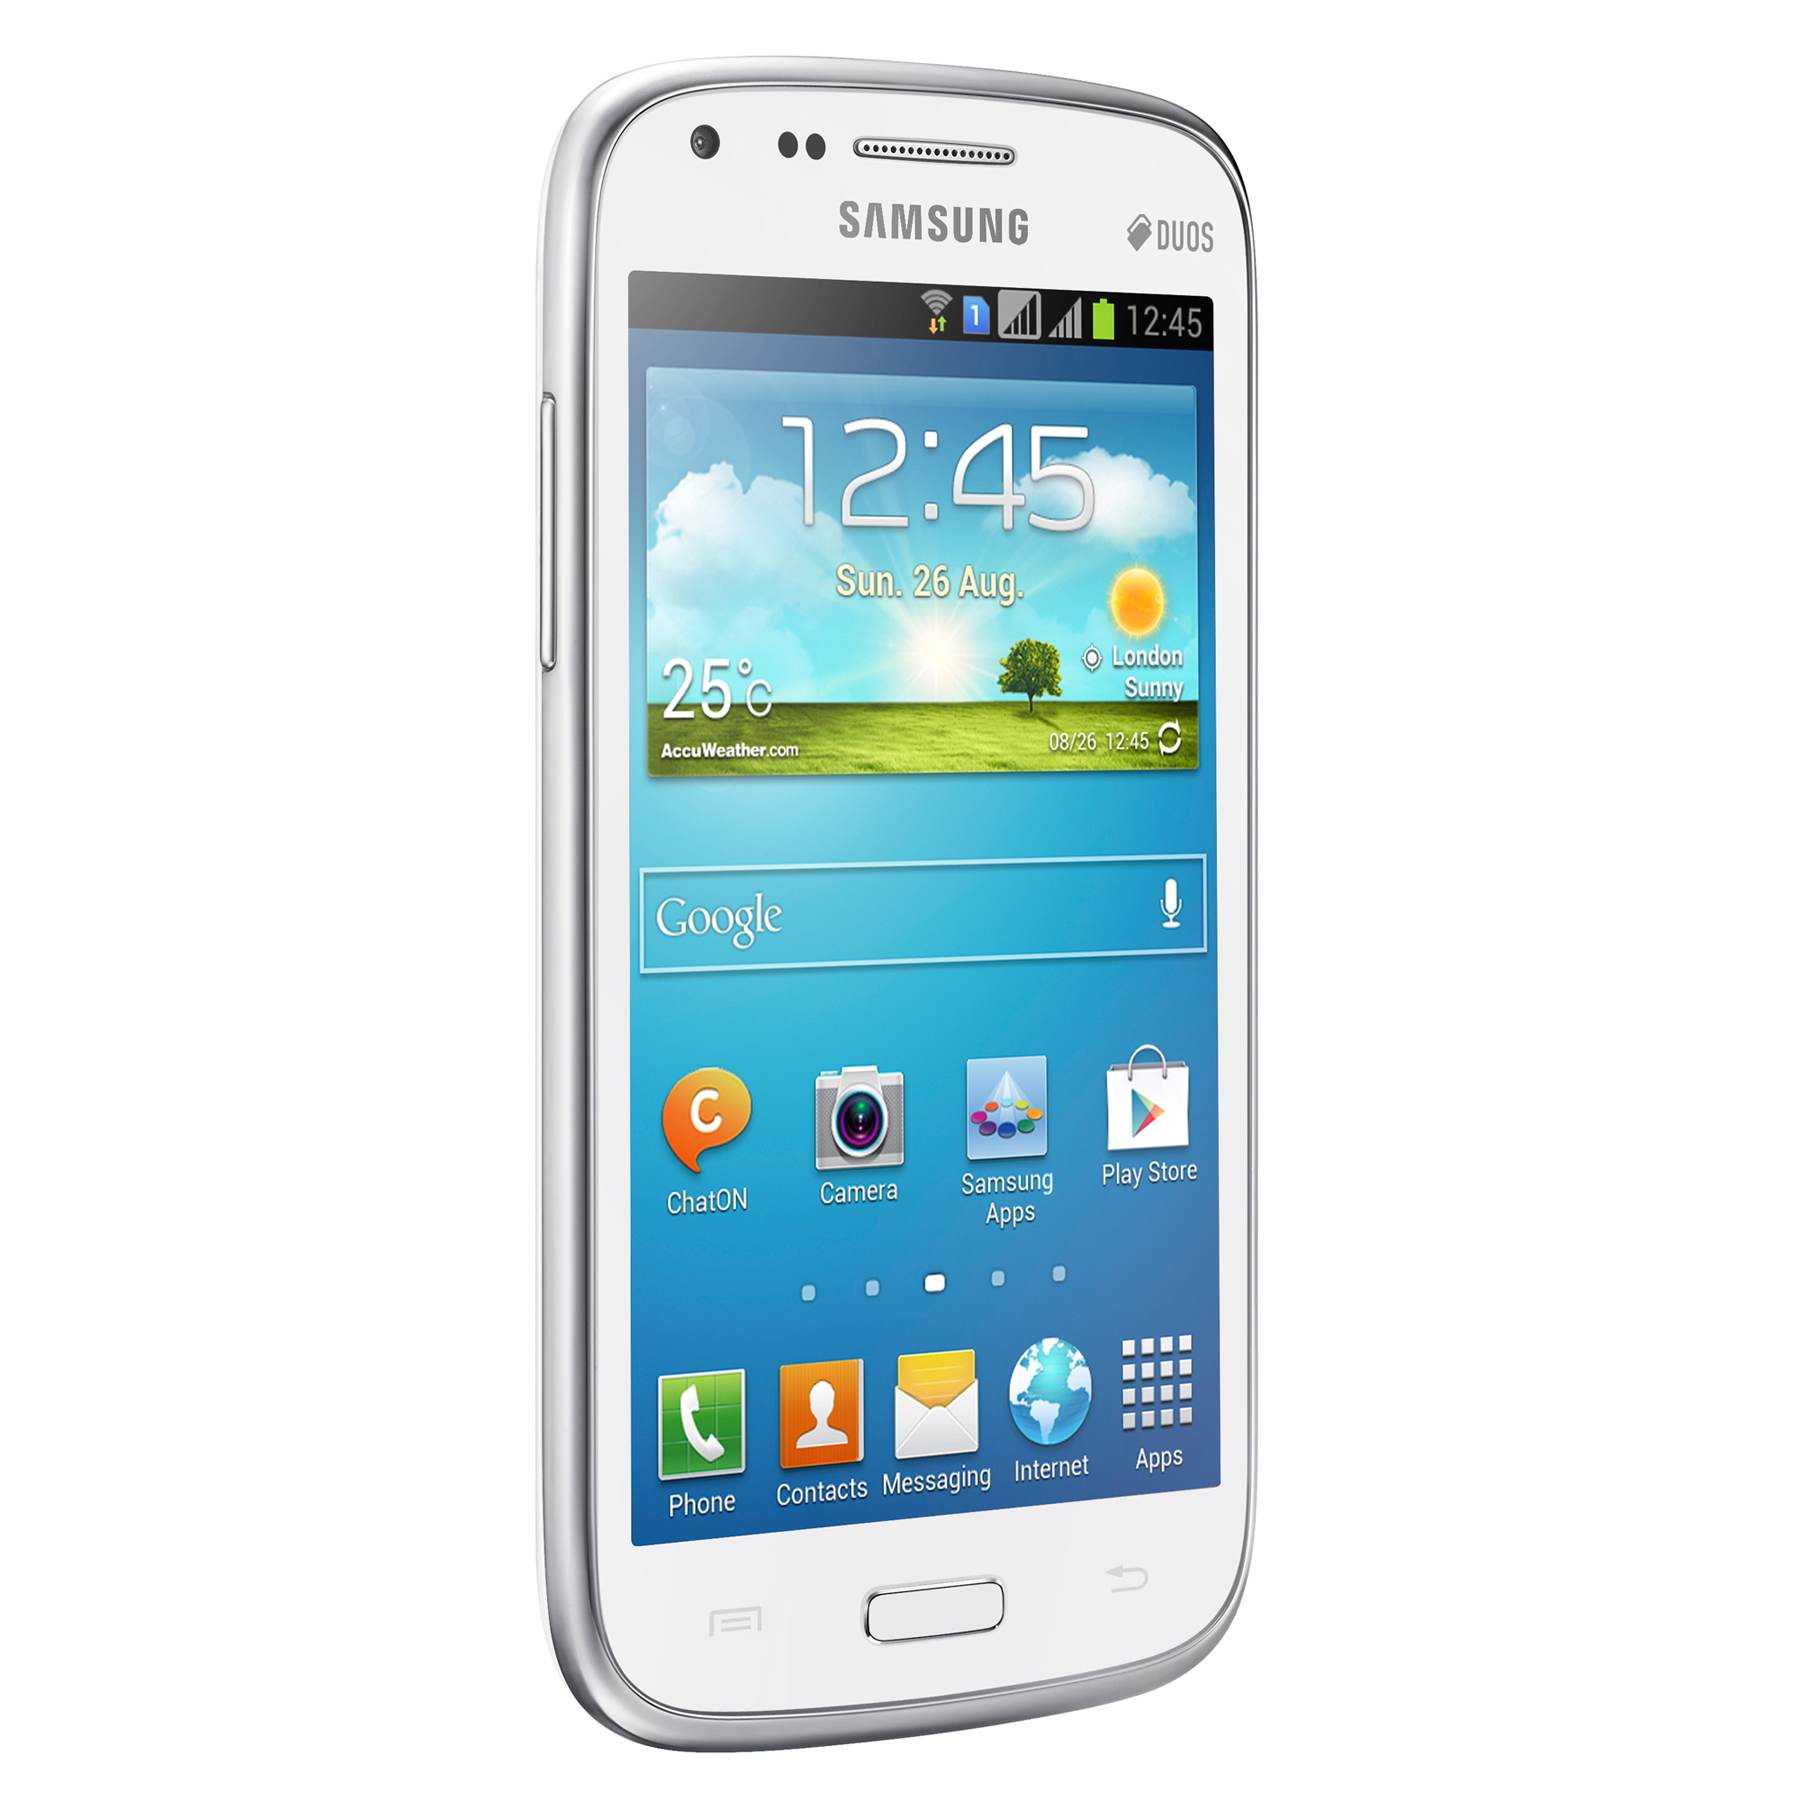 Samsung galaxy core gt i8260 blanc mobile smartphone samsung sur samsung galaxy core gt i8260 blanc mobile smartphone samsung sur ldlc altavistaventures Choice Image